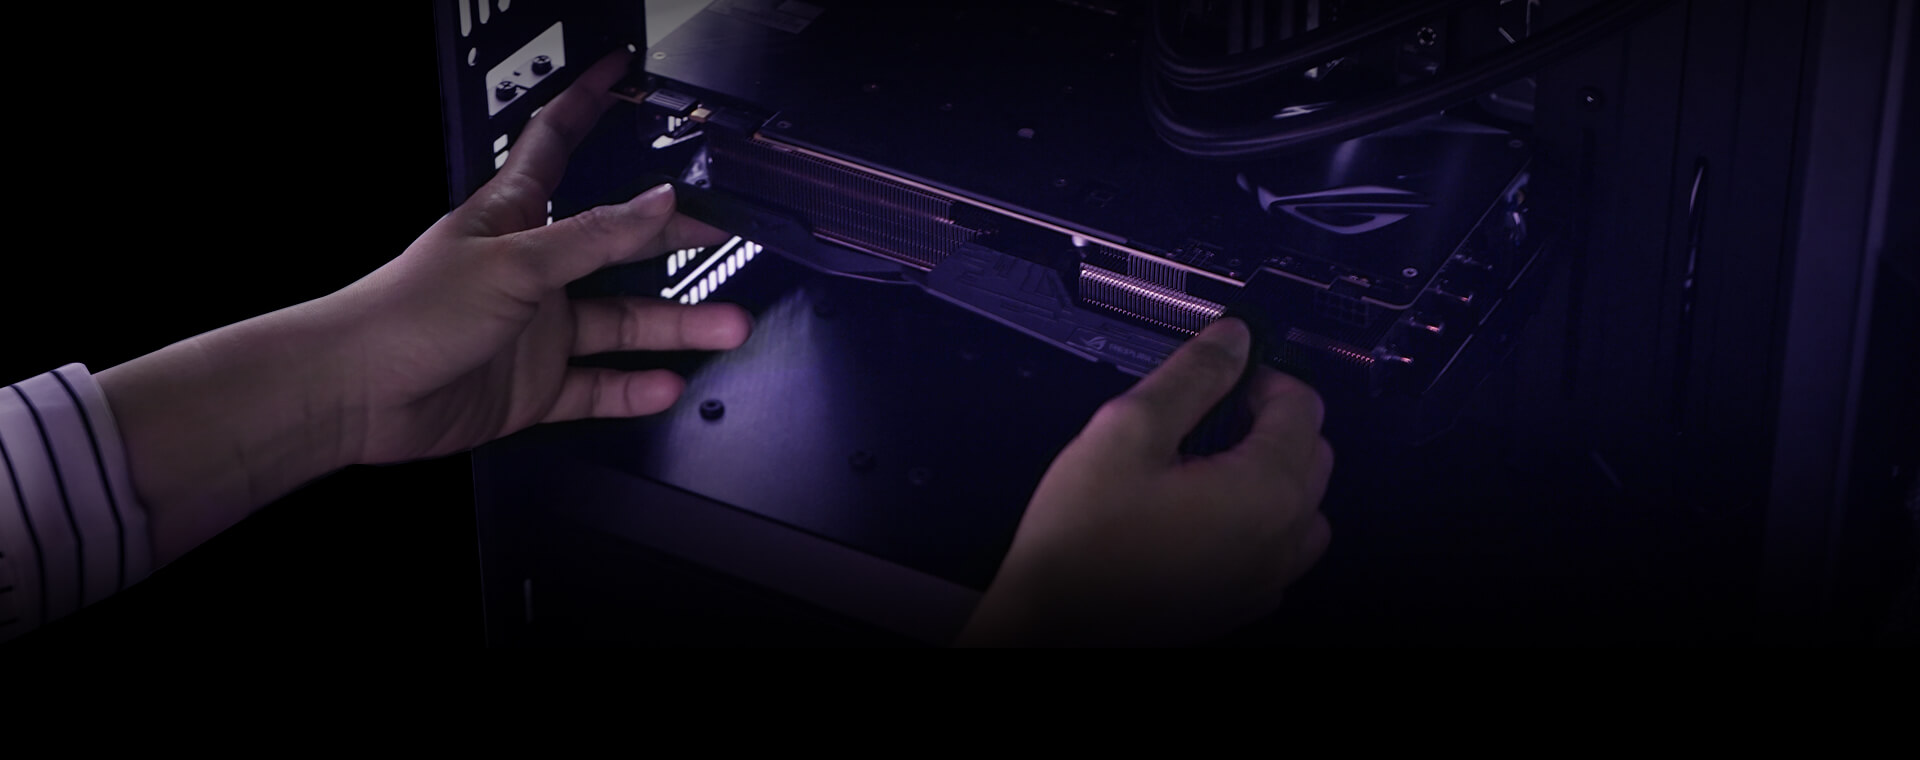 Rog Strix Z390 E Gaming Motherboards Asus Usa Building And Mounting Regulator Circuit For Wifi Bridge The Most Diverse Ecosystem Of Components In Industry Make Personalizing A Rig With Wonderfully Easy